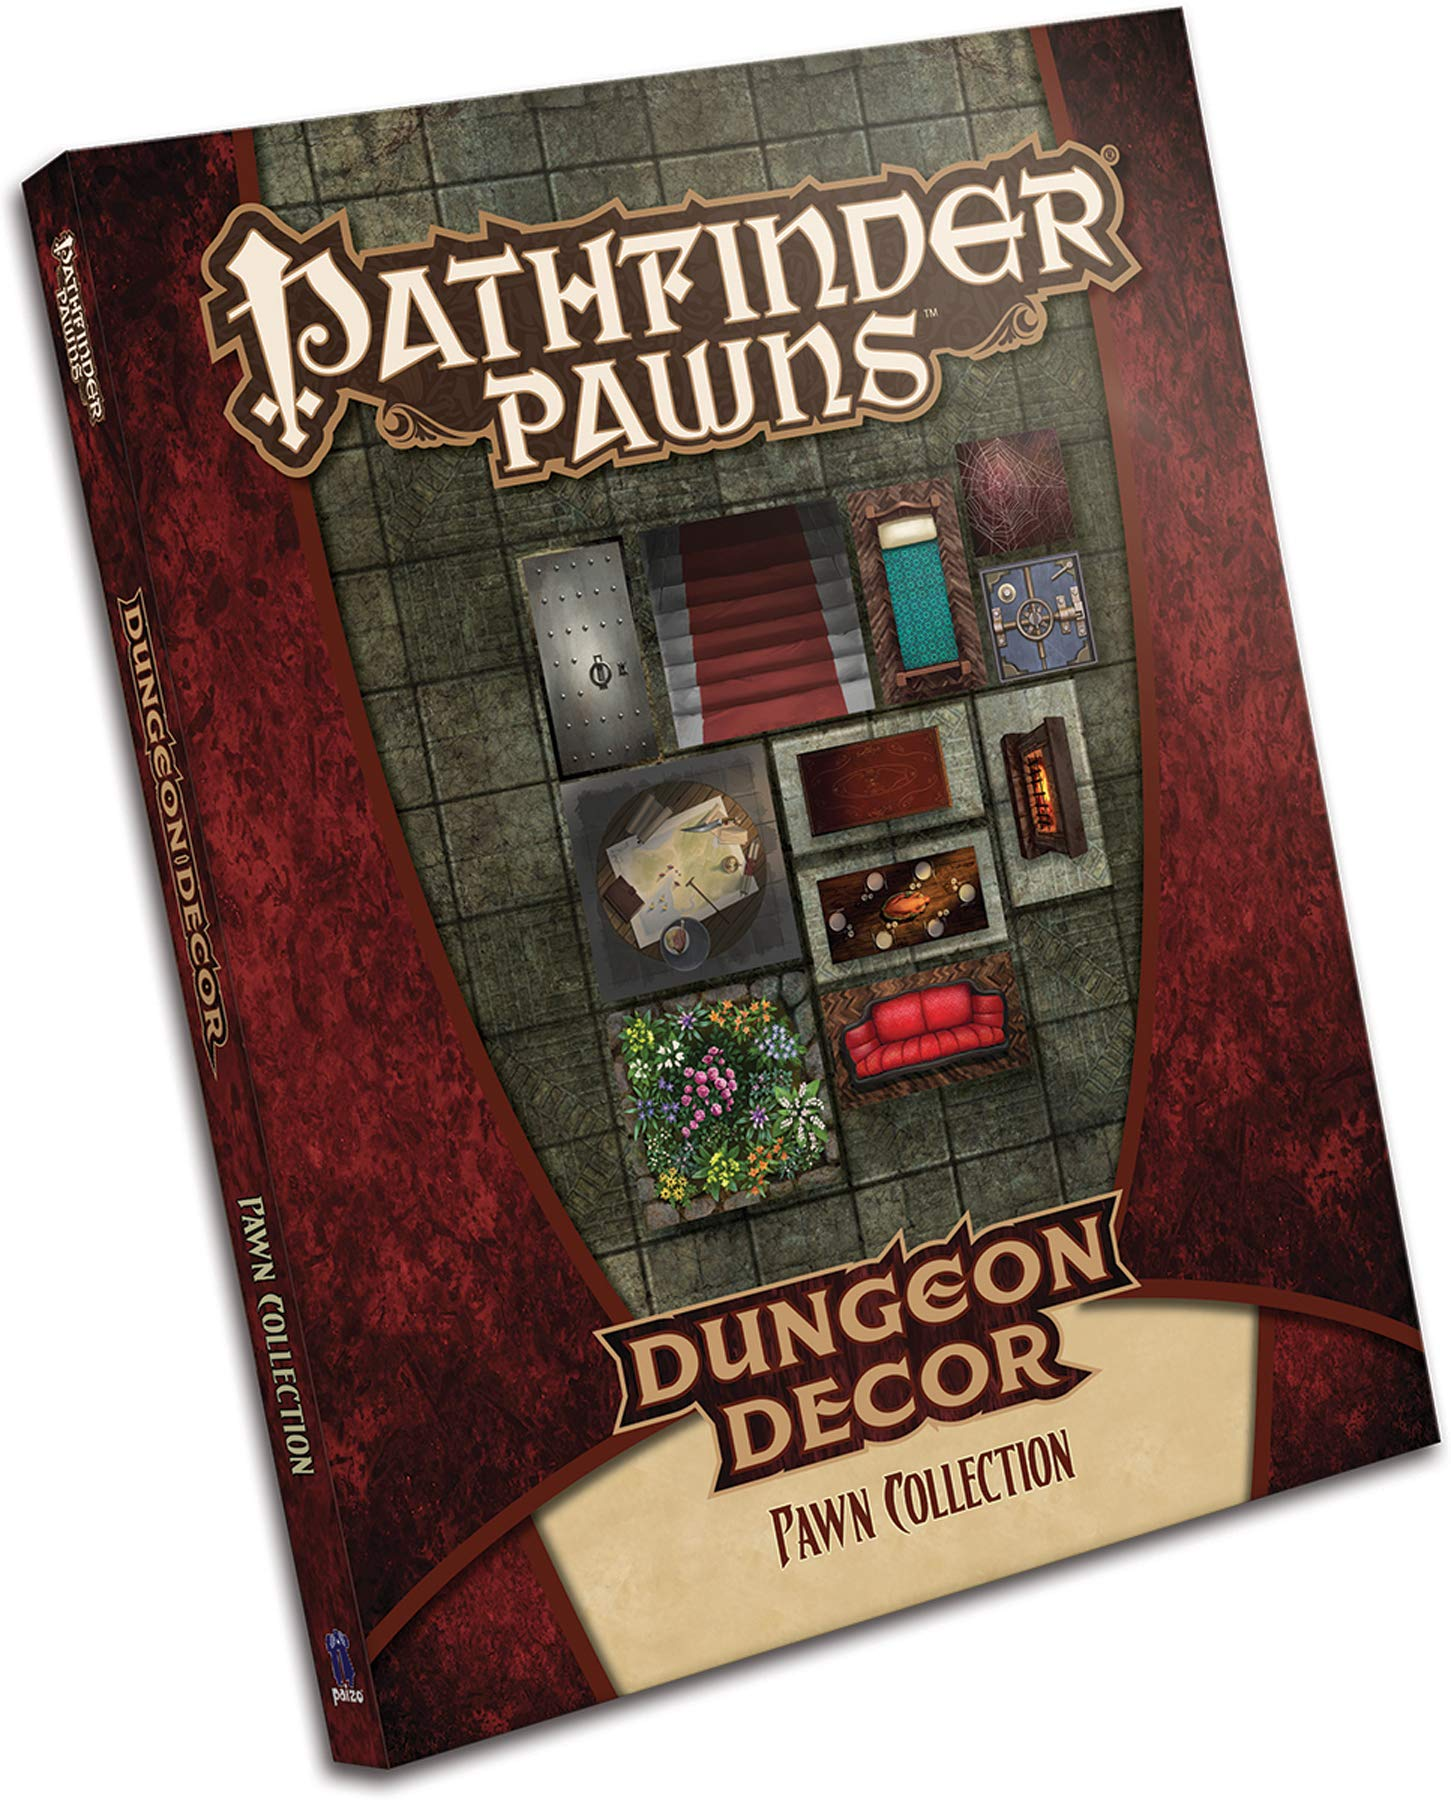 Image OfPathfinder Pawns - Dungeon Decor Pawn Collection